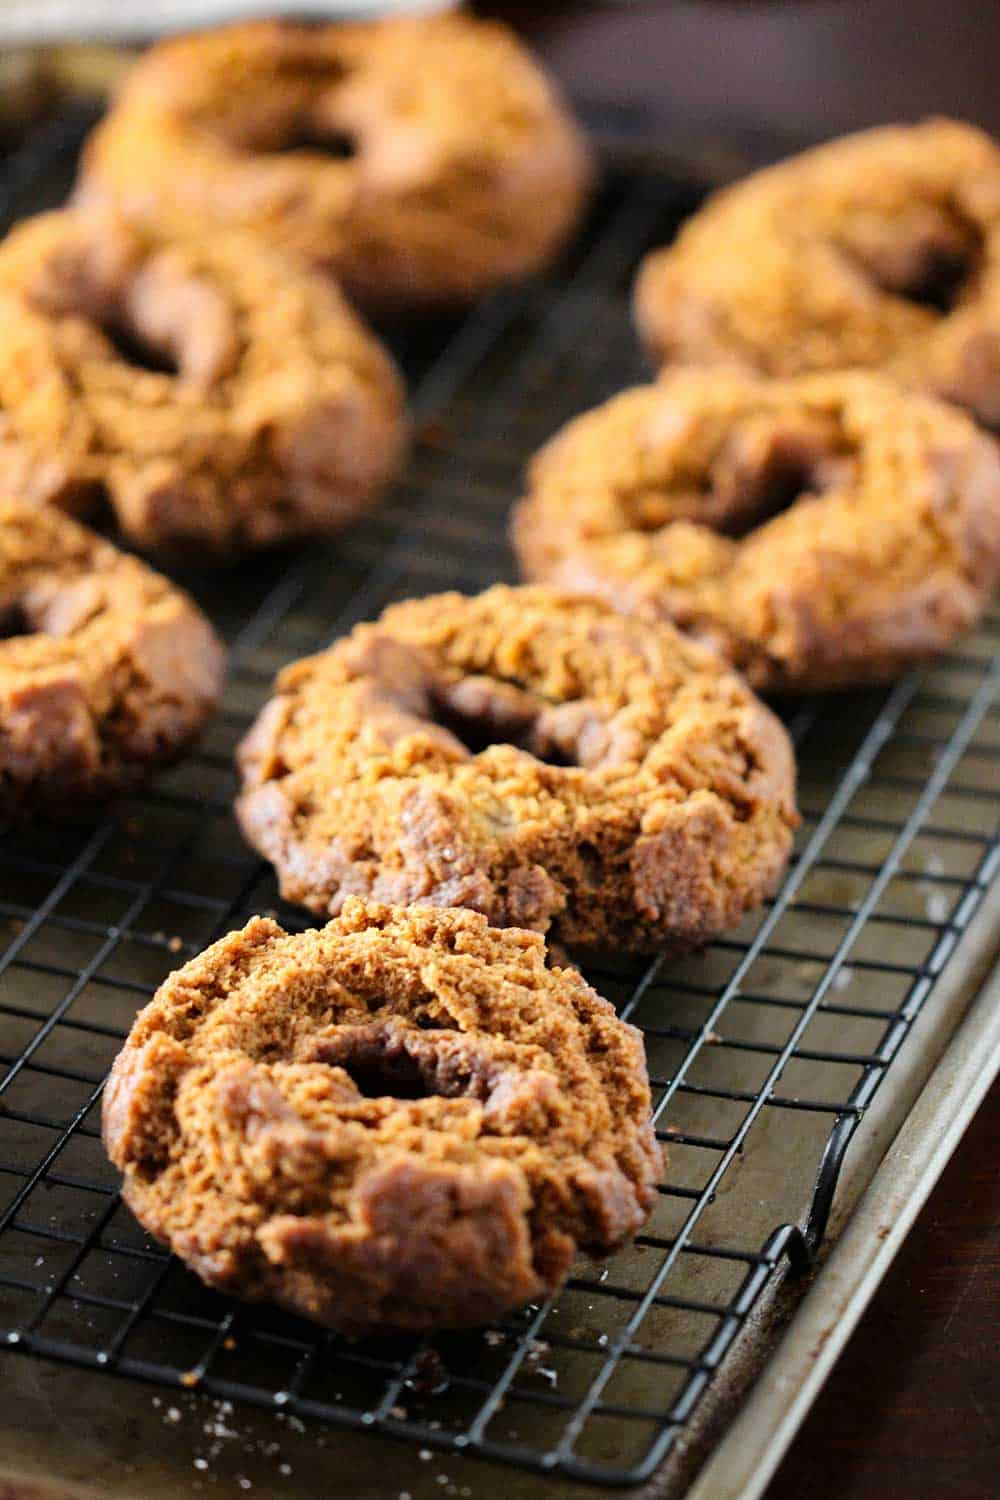 Apple cider doughnuts on a baking rack and baking sheet just after being fried.